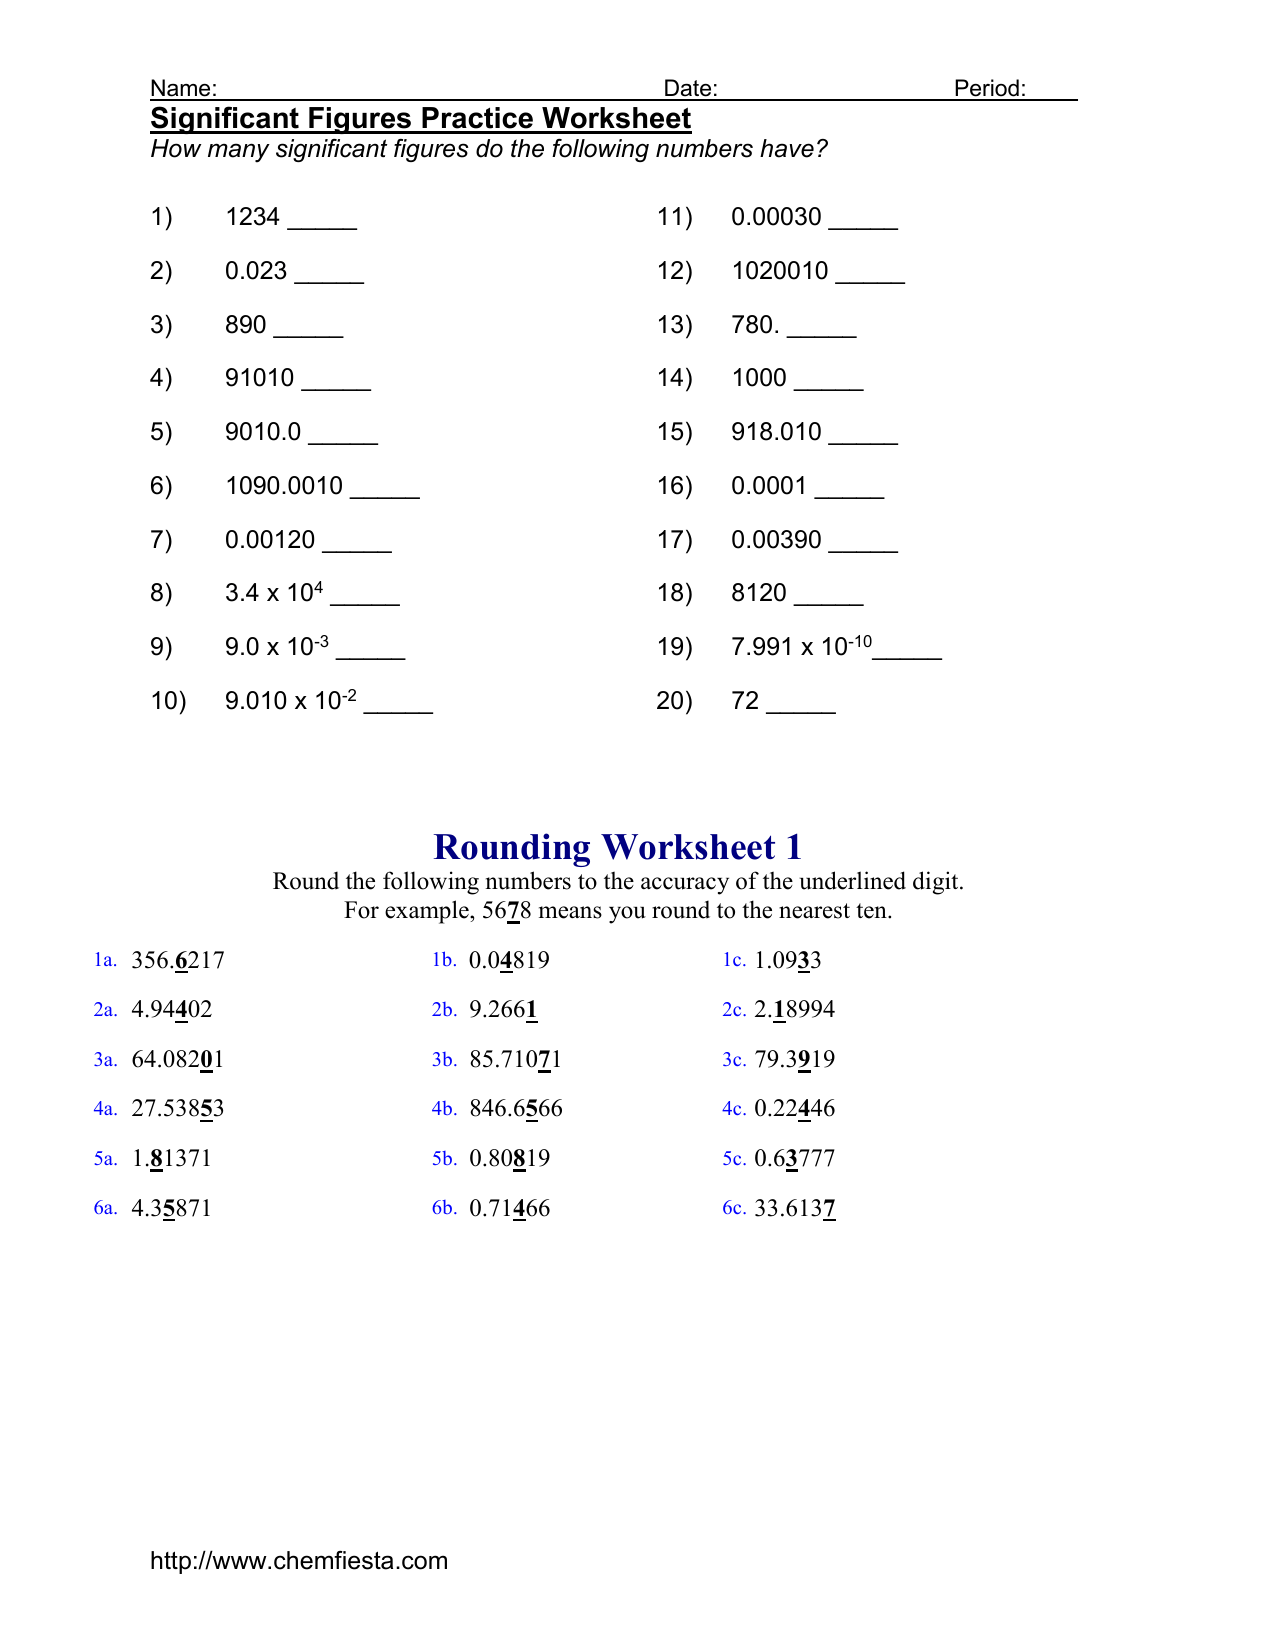 Chemfiesta Significant Figures Worksheet Answers